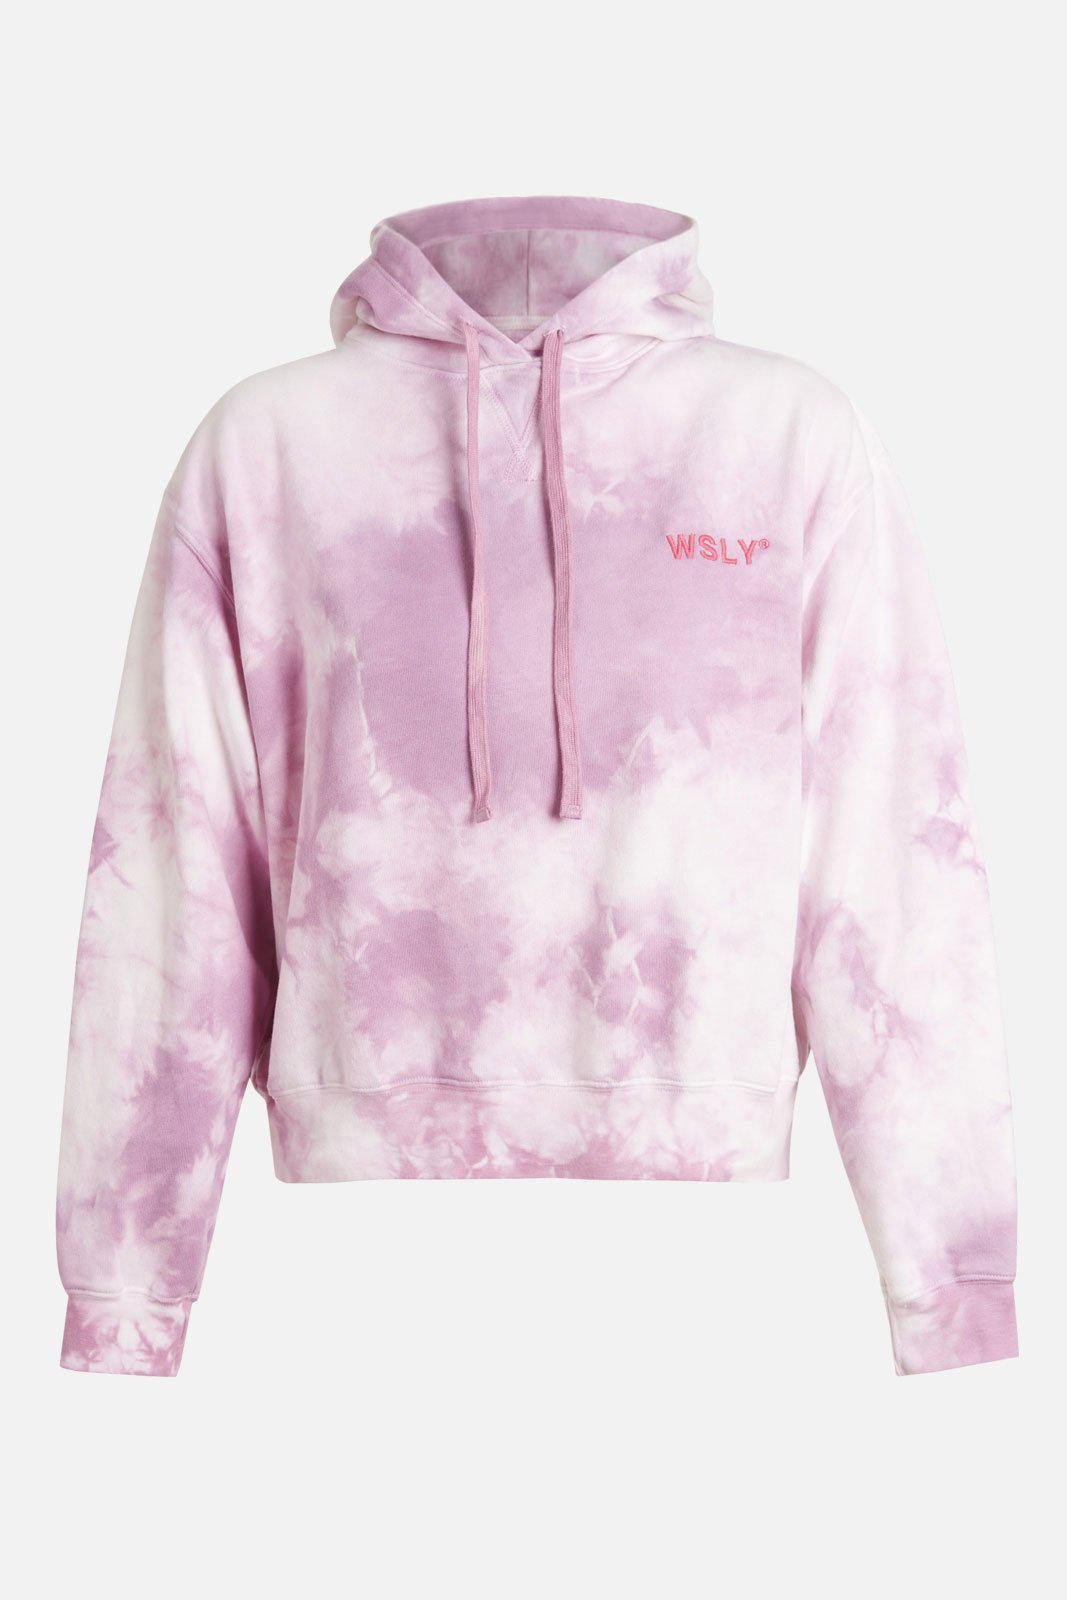 The Ecosoft Classic Hoodie 7